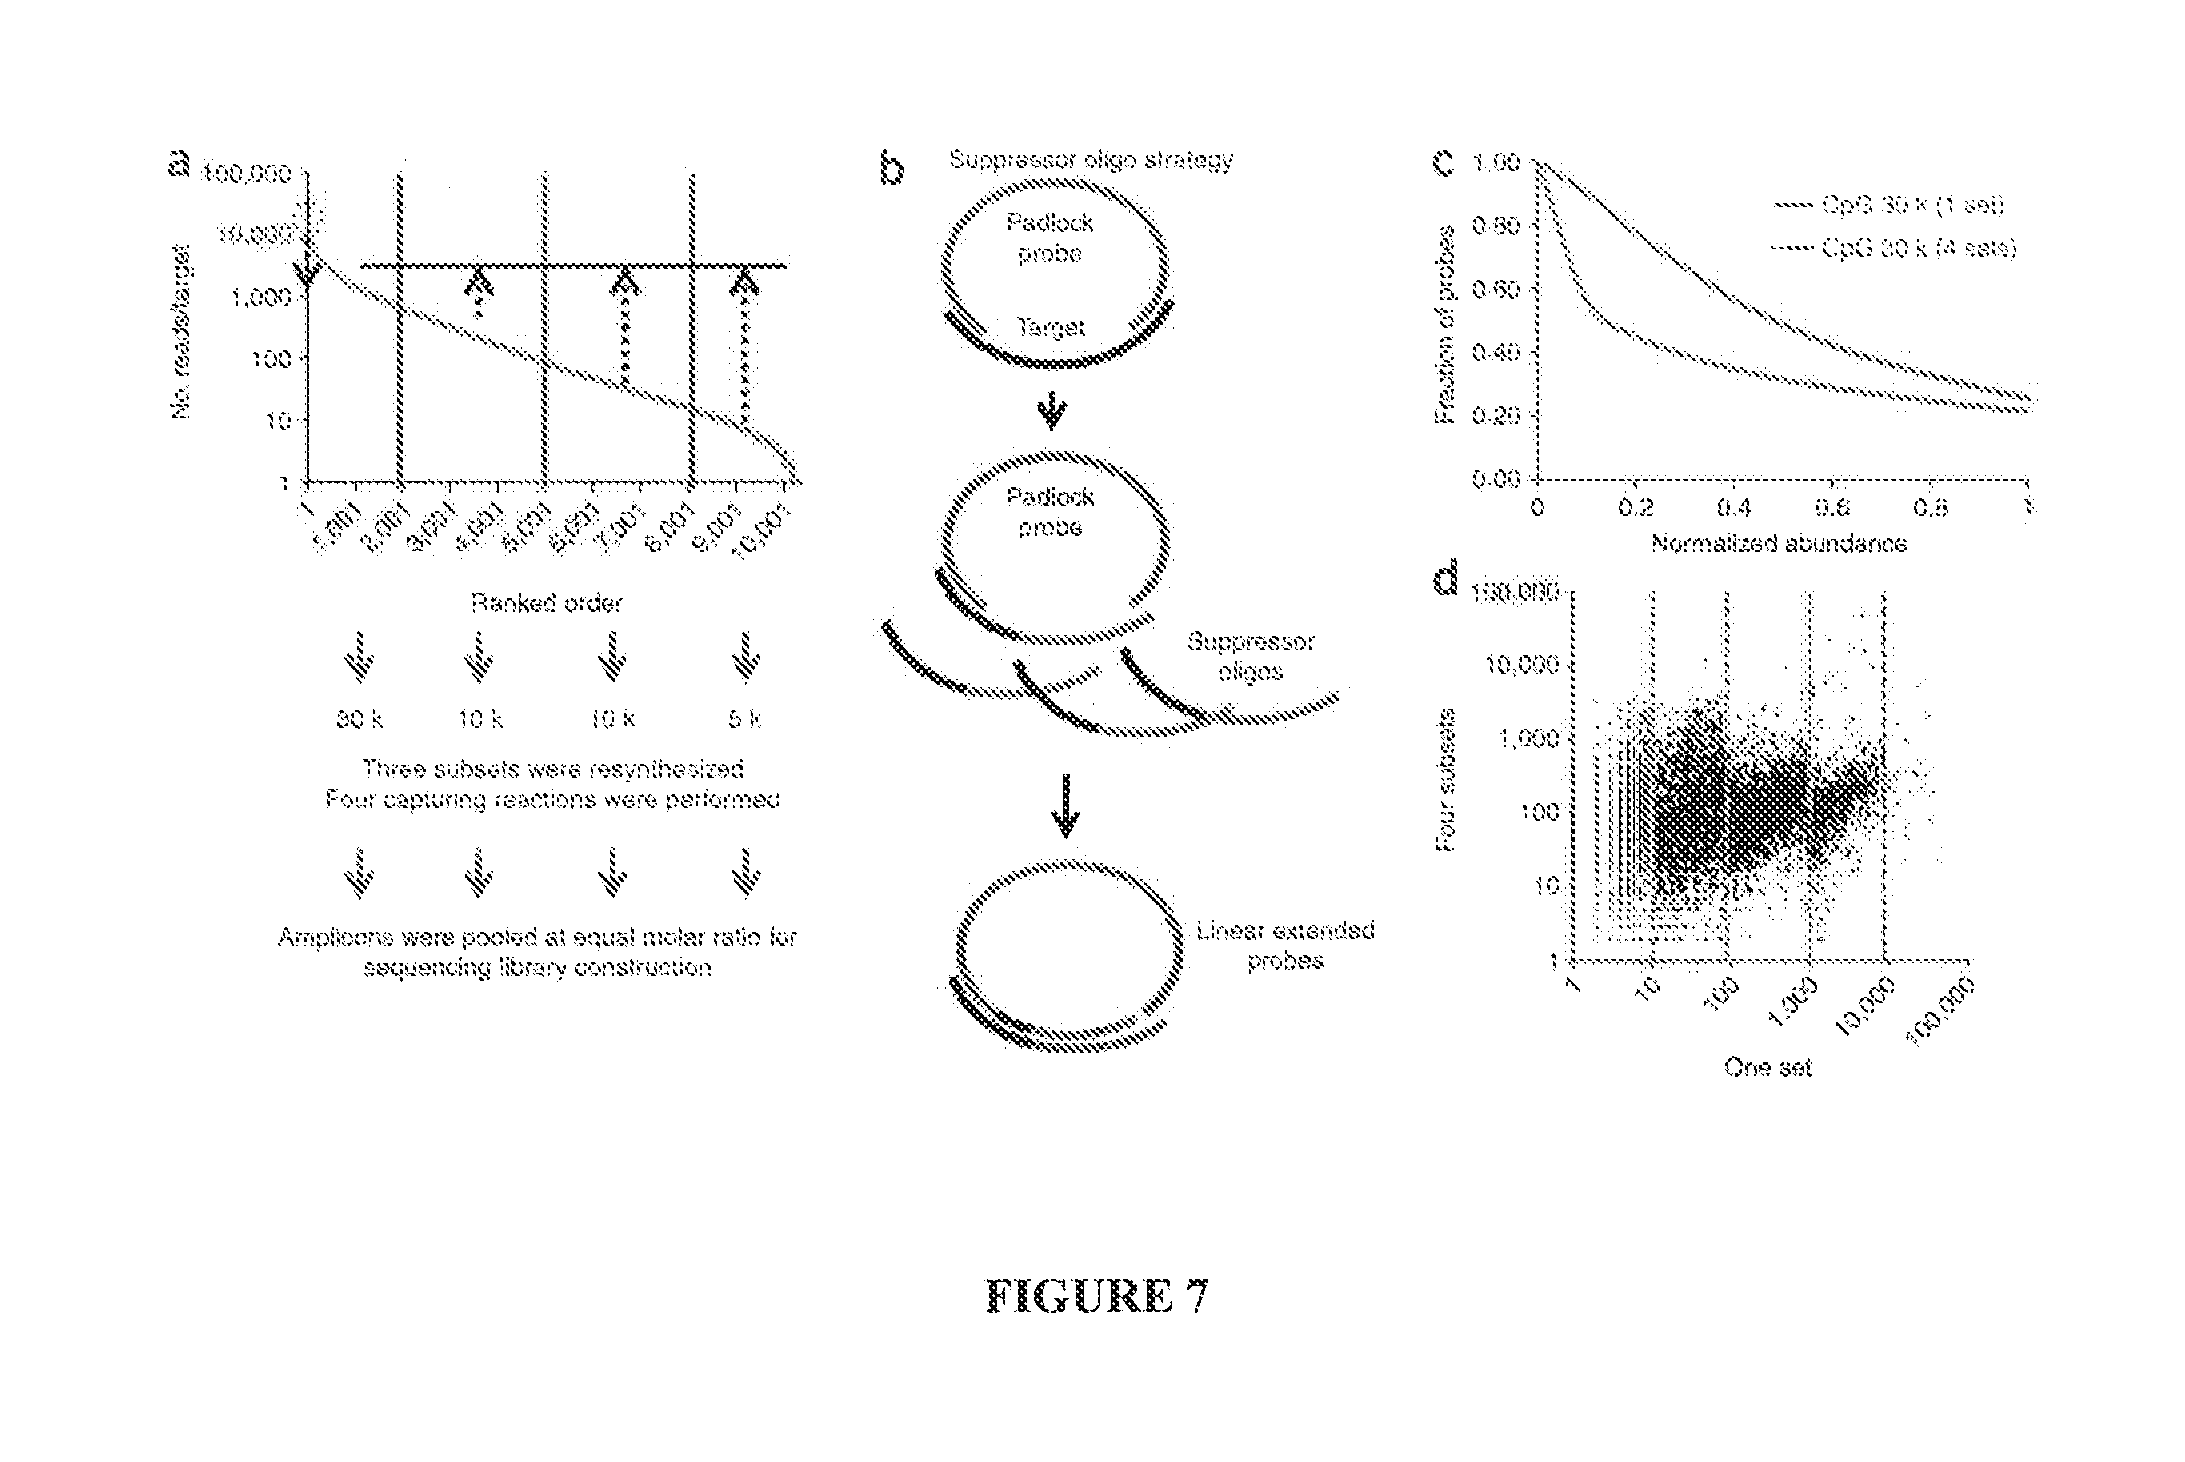 US20140357497A1 - Designing padlock probes for targeted